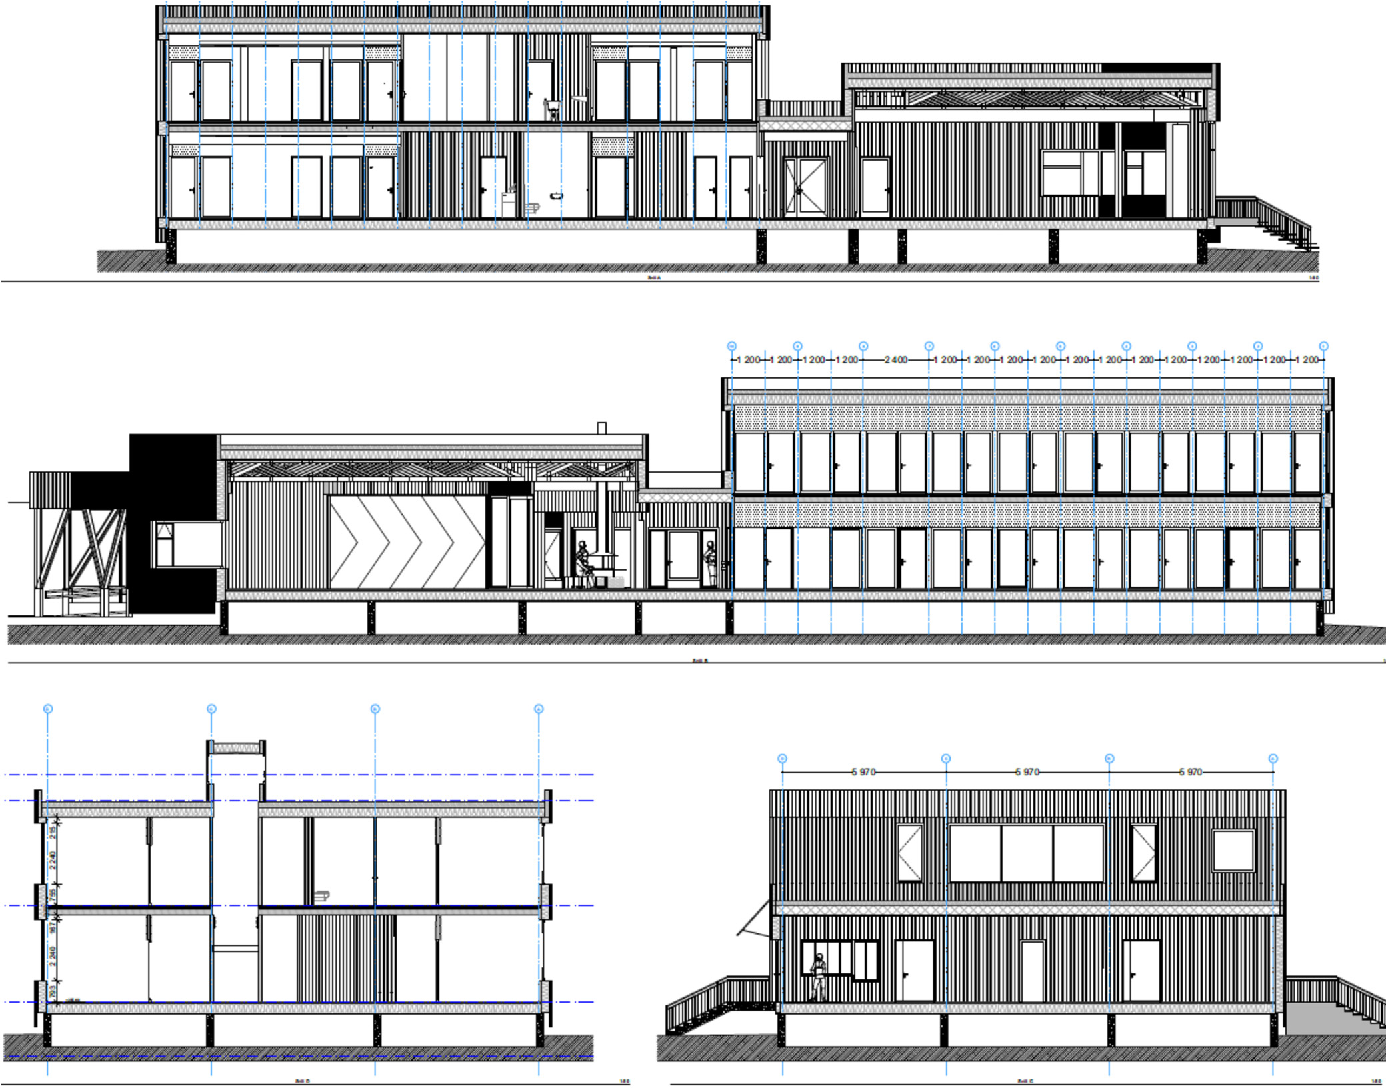 Figure 2.4 from ZEB Pilot Campus Evenstad. Administration ... on breaking bad house plans, gilmore girls house plans, space house plans, cardinal house plans, modern house plans, school house plans, jigsaw house plans, blue bloods house plans, smoke house plans, manhattan house plans, hawaii house plans, six feet under house plans, family house plans, american horror story house plans, 3-dimensional house plans, sunday house plans, cook house plans, house house plans, new york house plans,